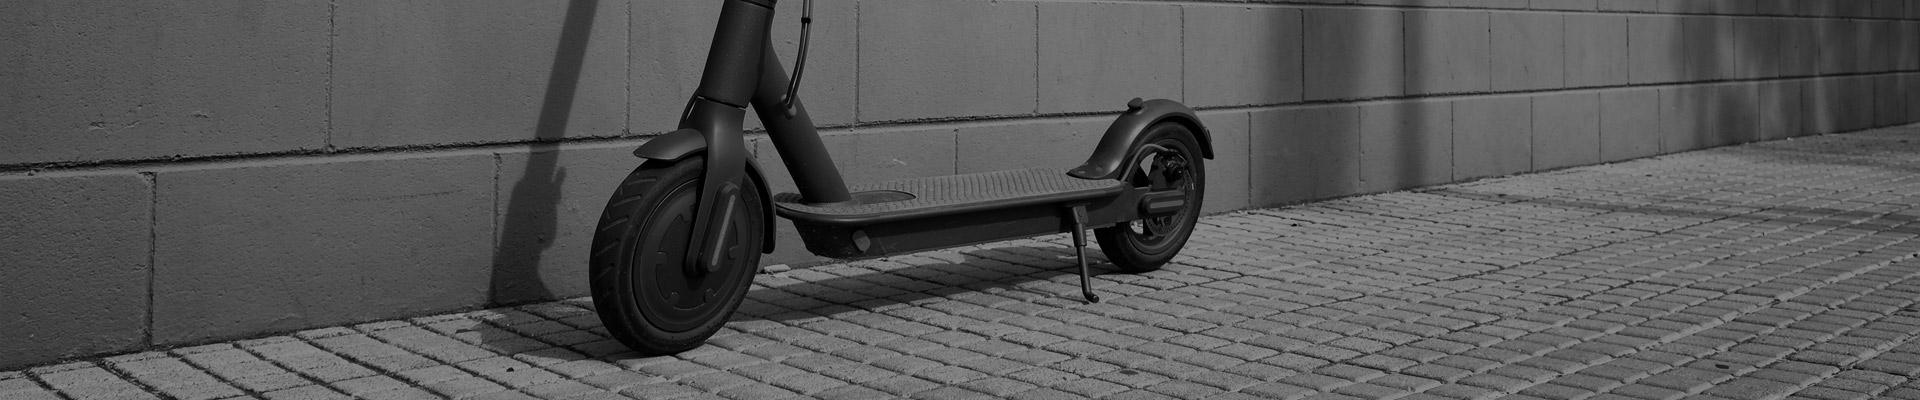 Electric Scooters online | Buy Now on Xtreme-Skate.com